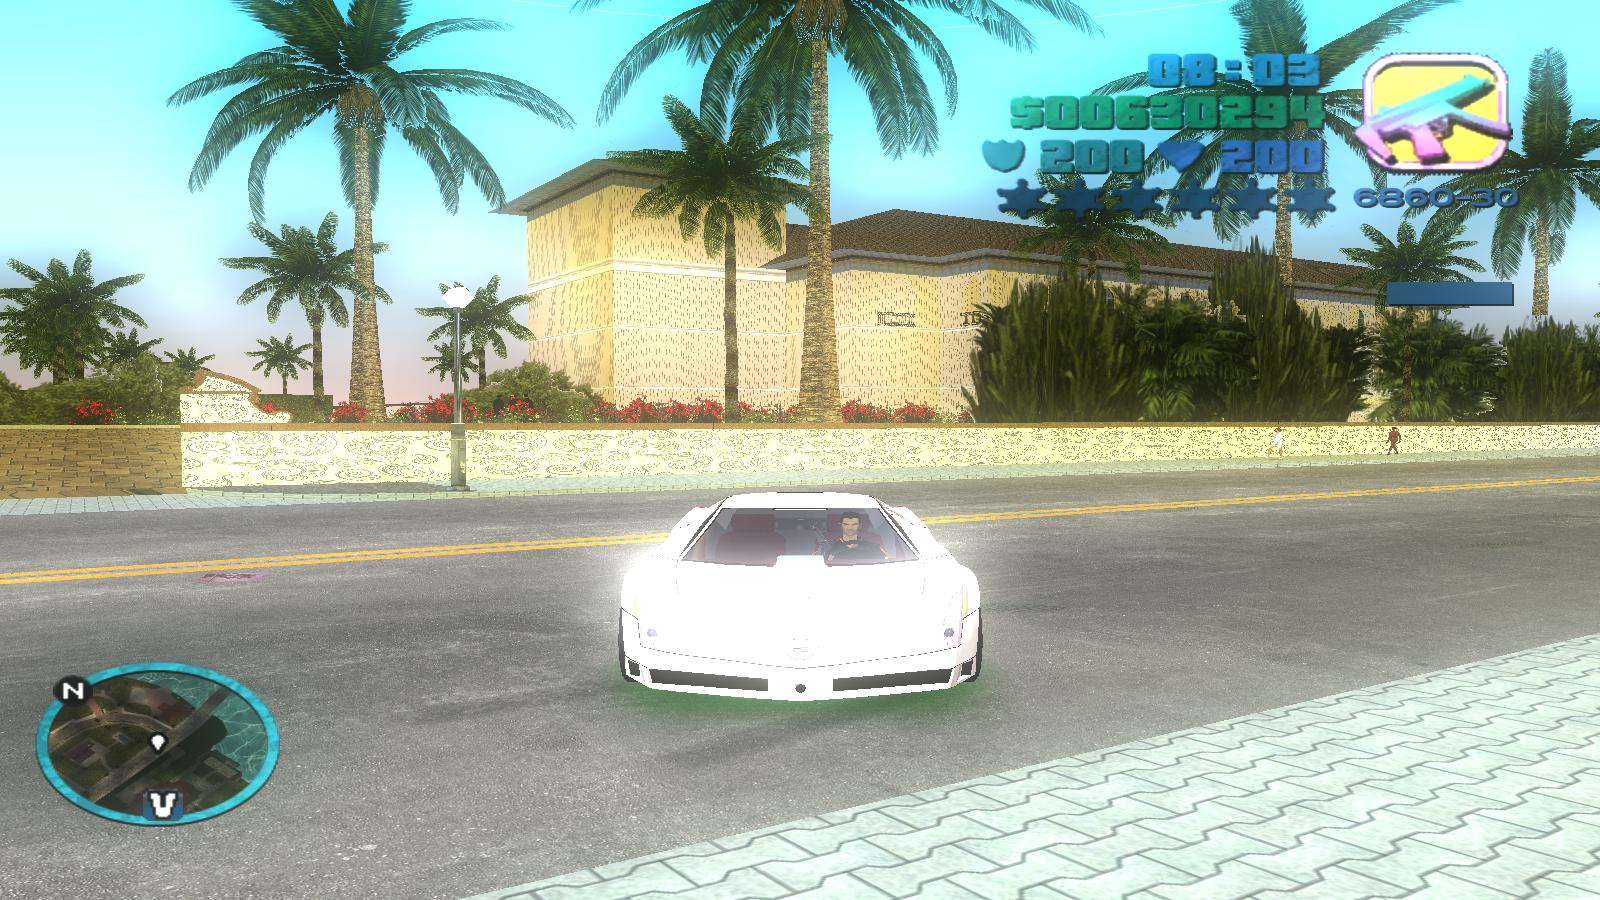 gta vice city download free full version pc torent tpb